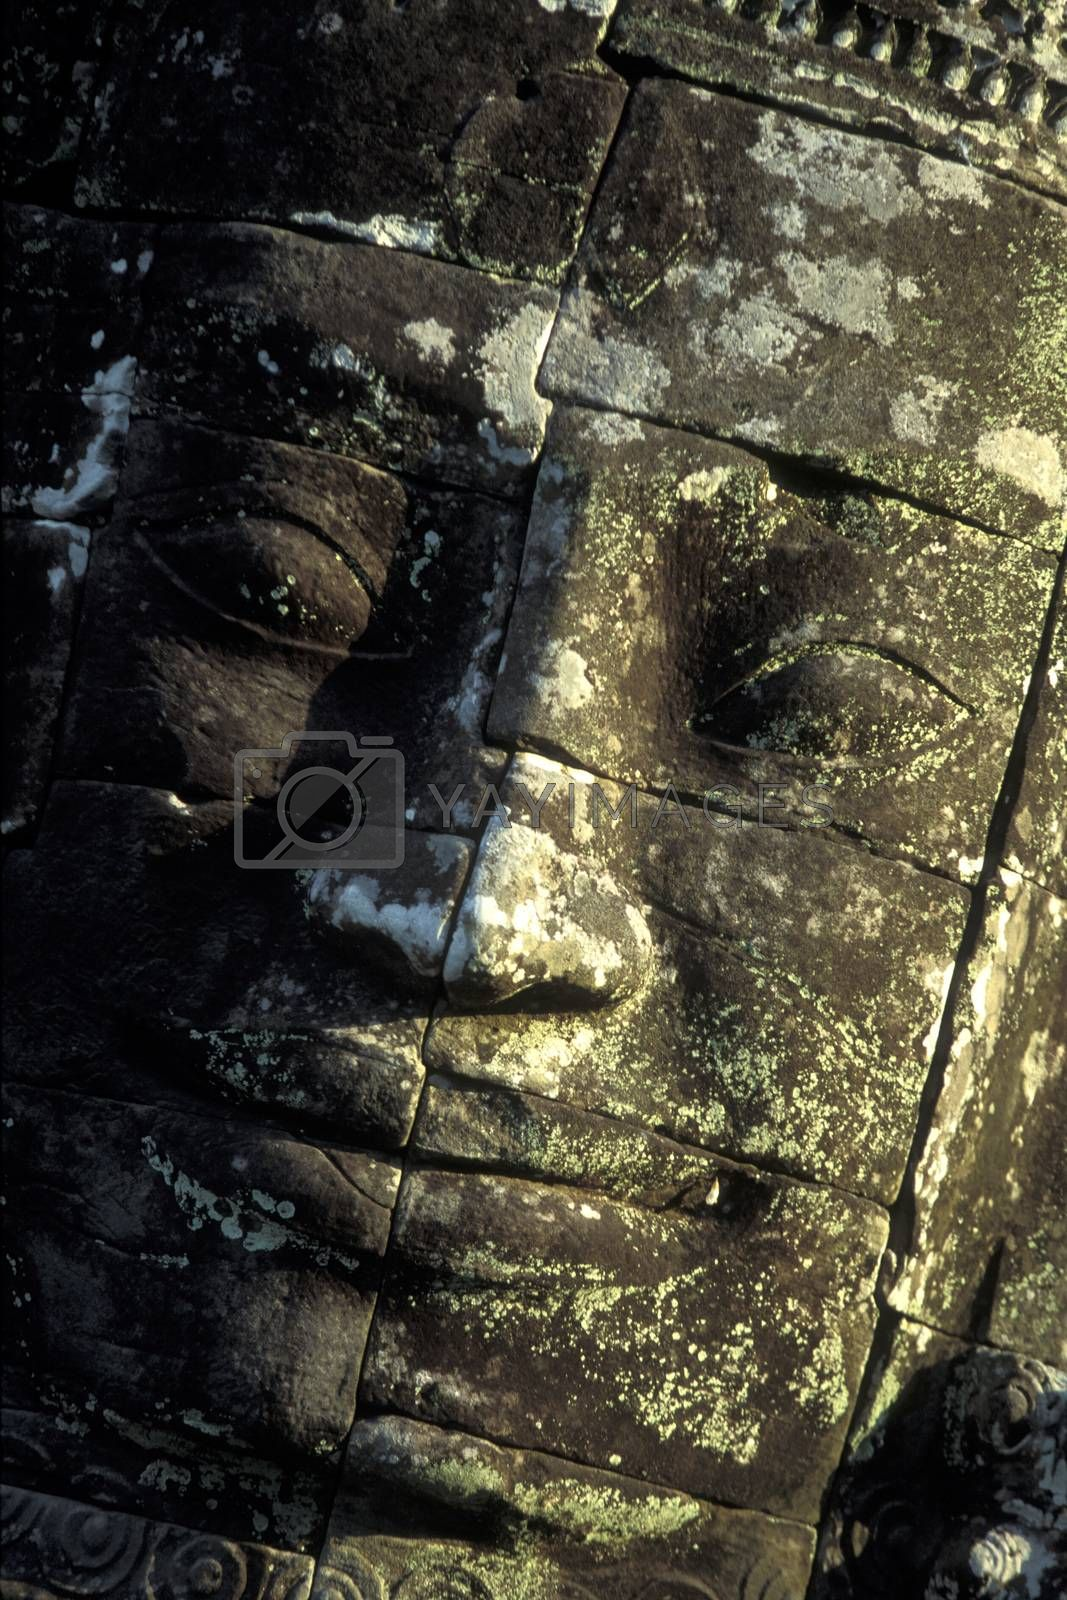 Stone face at the Bayon Temple the Tempel Ruins of Angkor Thom in the Temple City of Angkor near the City of Siem Reap in the west of Cambodia.  Cambodia, Siem Reap, February, 2001